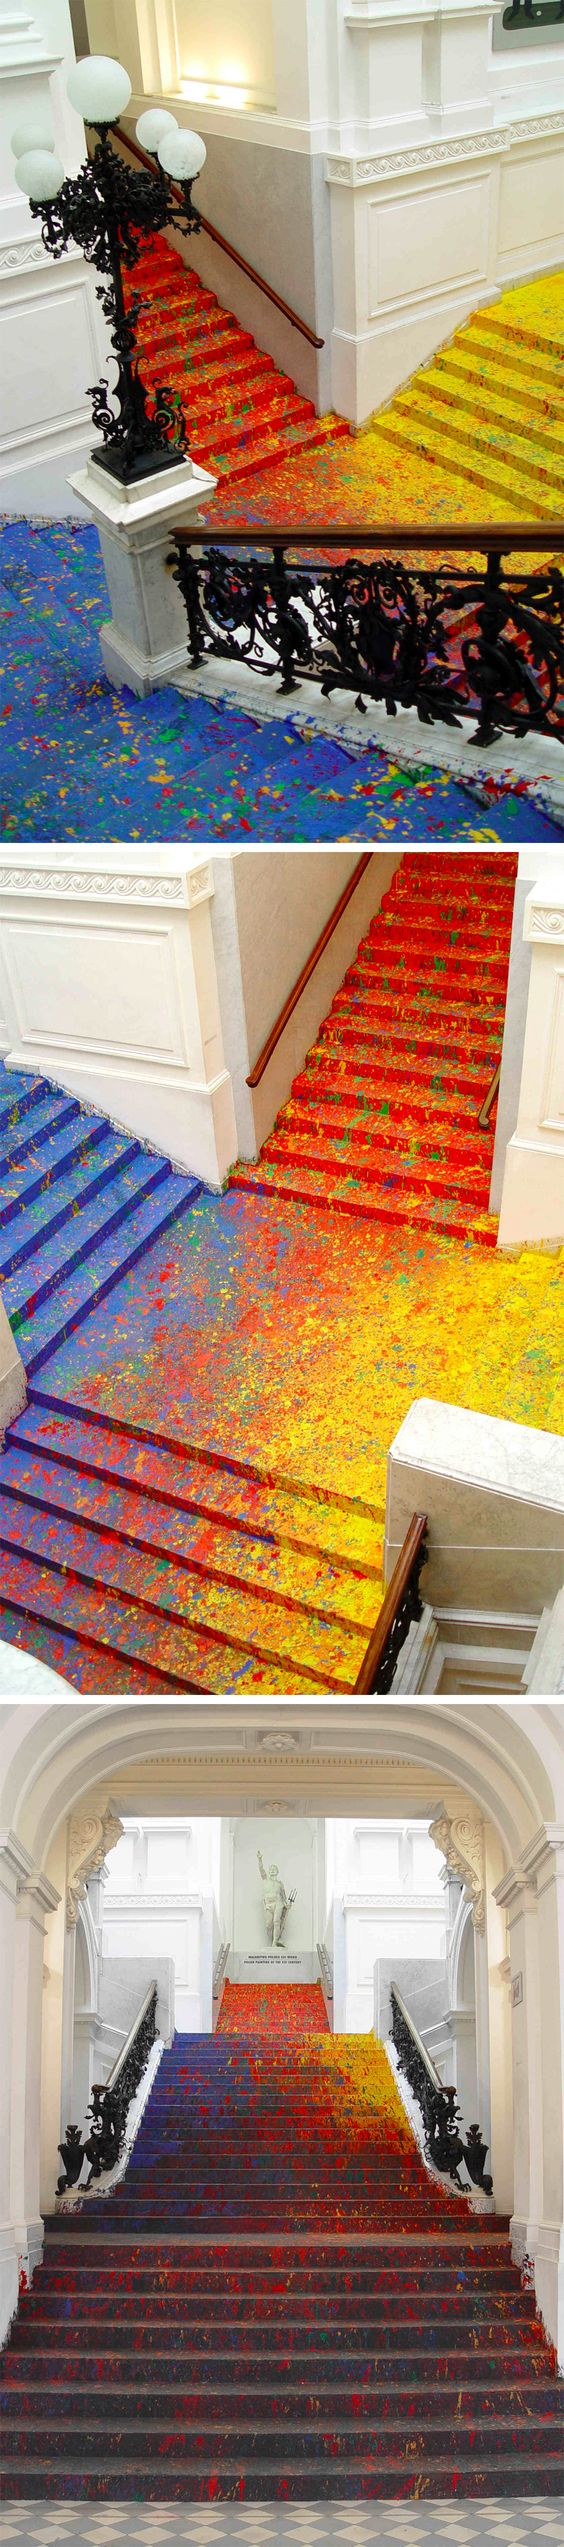 Artist Leon Tarasewicz Covers the Poland National Gallery's Great Hall Staircase in Splatter Paint: